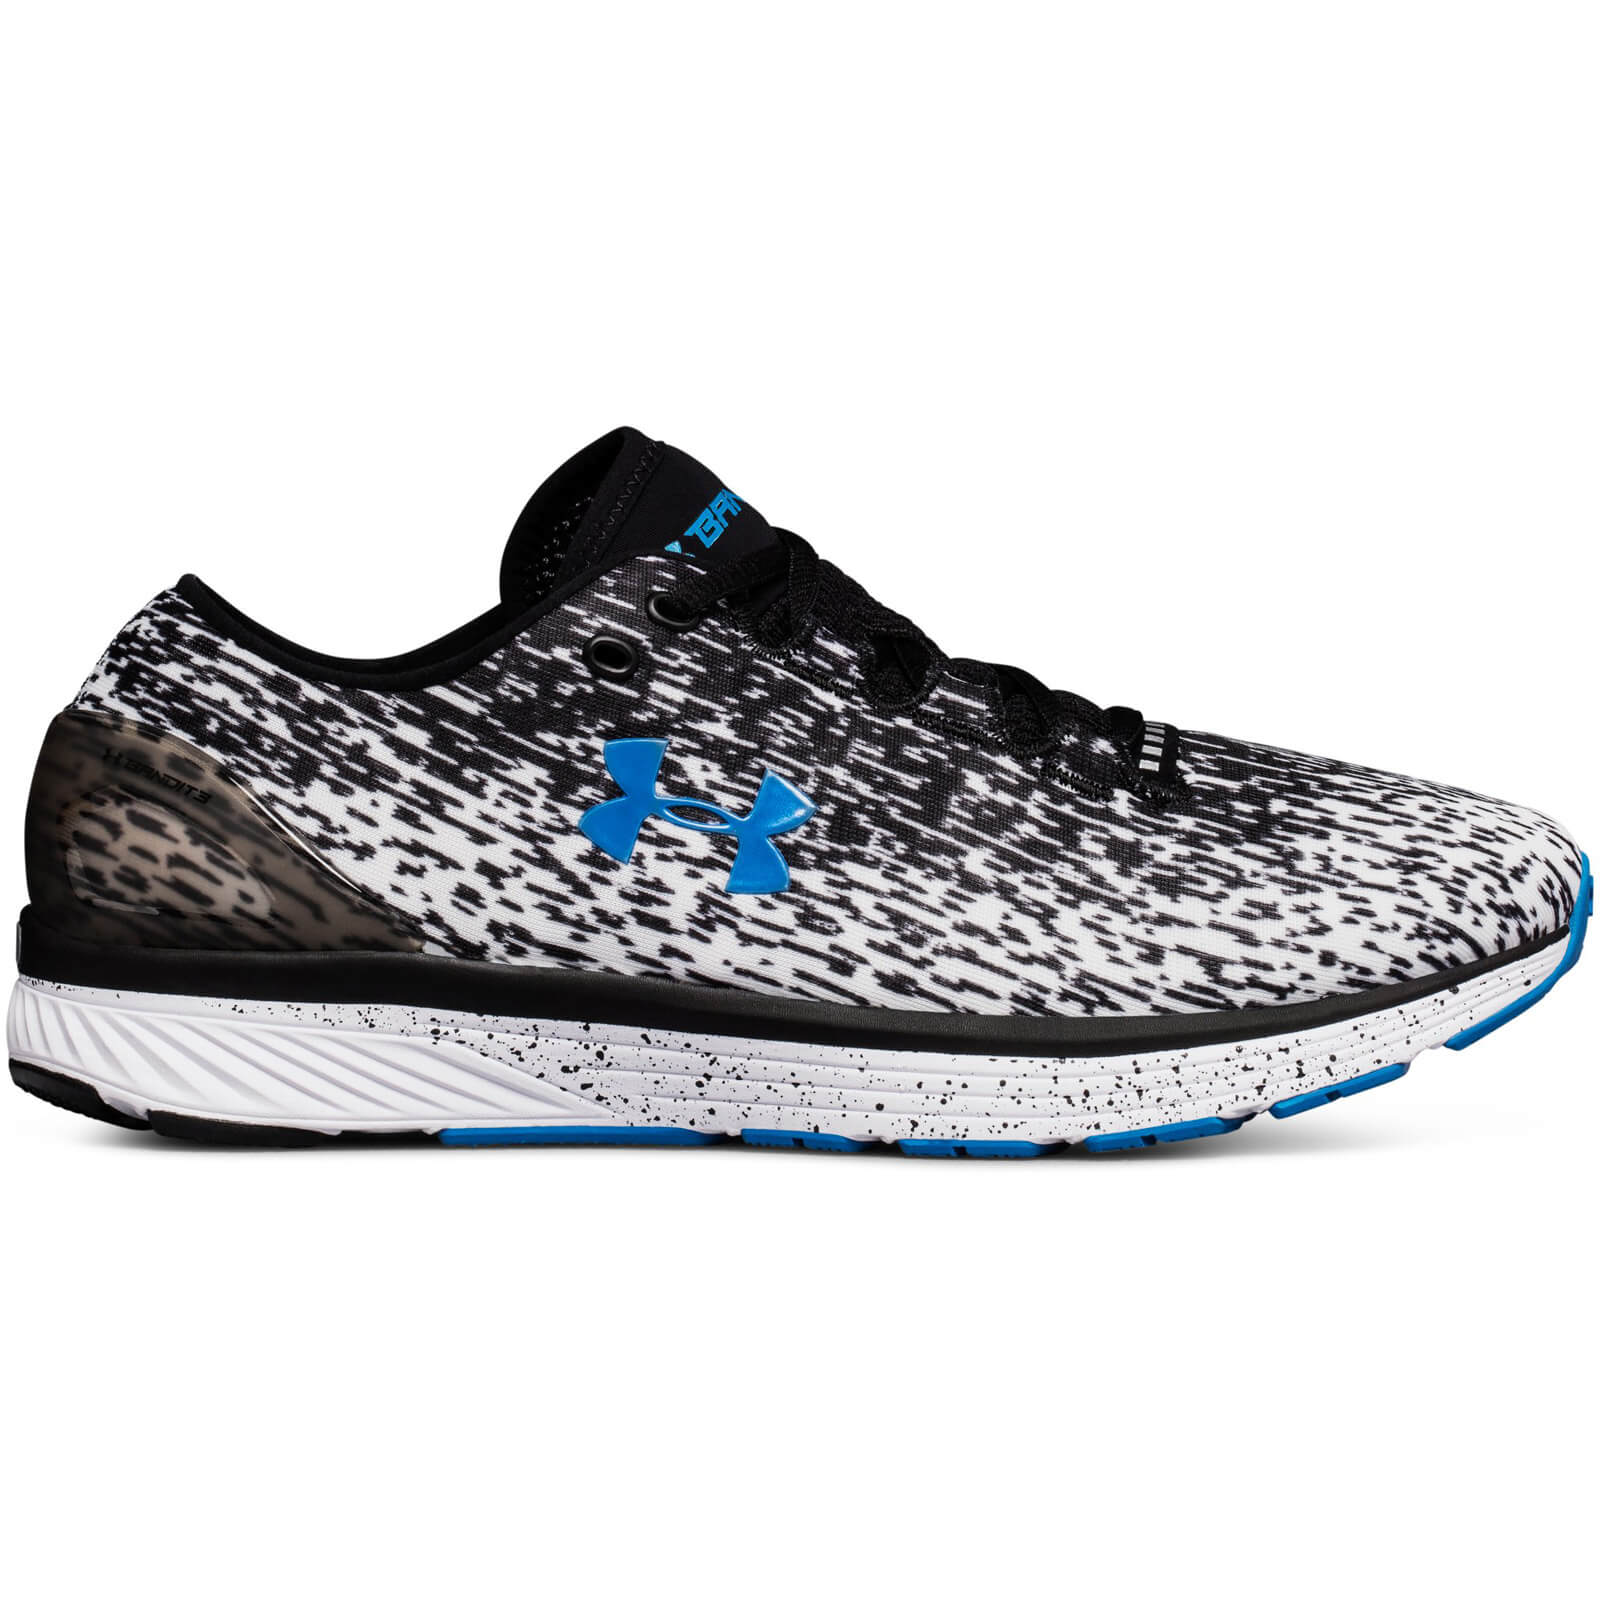 big sale 61a77 cb9bf Under Armour Men's Charged Bandit 3 Ombre Running Shoes - Black/White